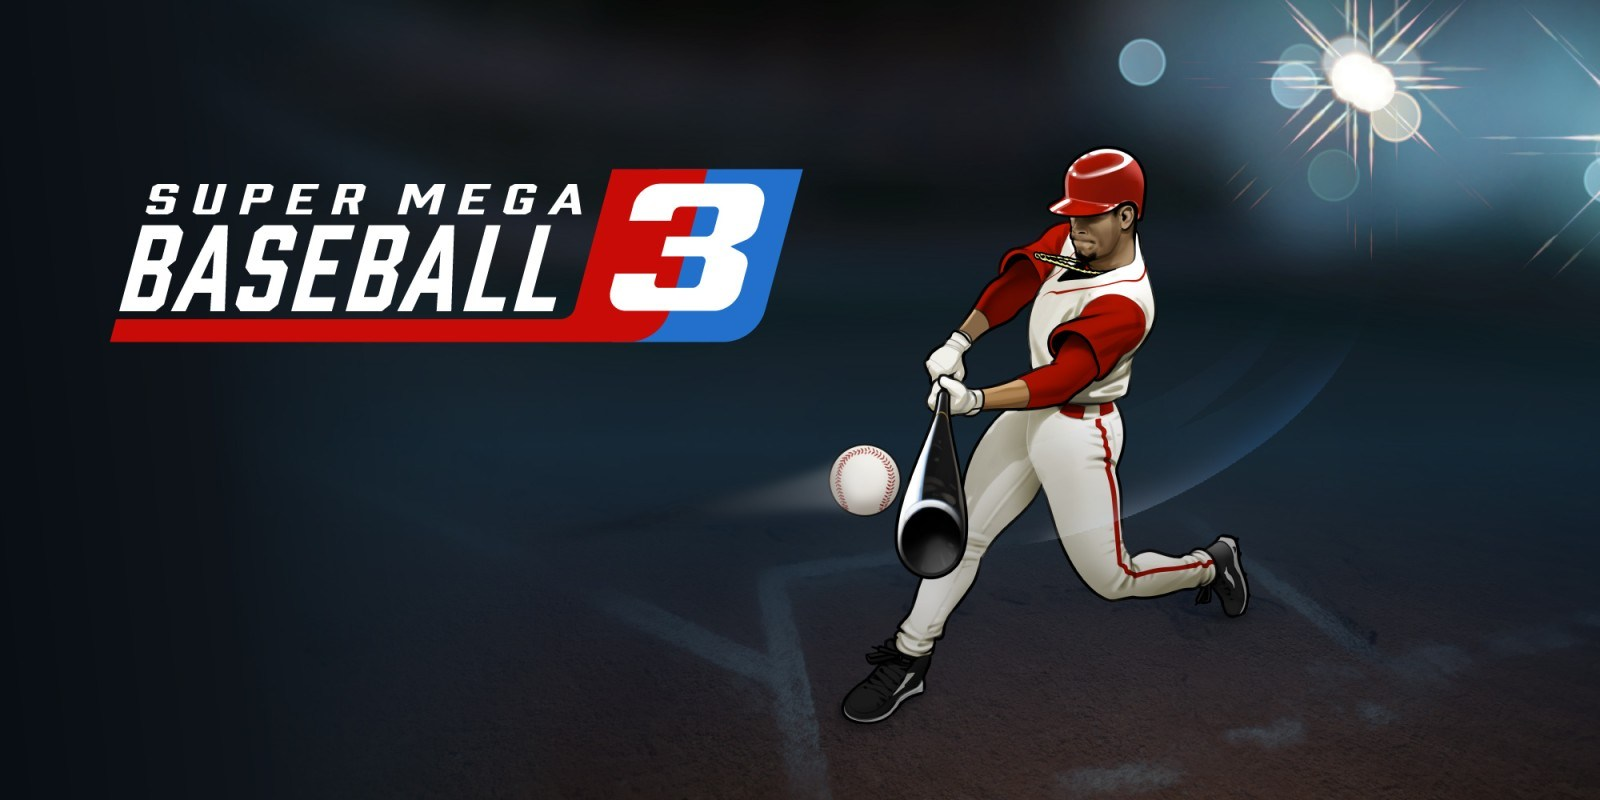 Download Super Mega Baseball 3 (v1.0.43186.0) [FitGirl Repack]